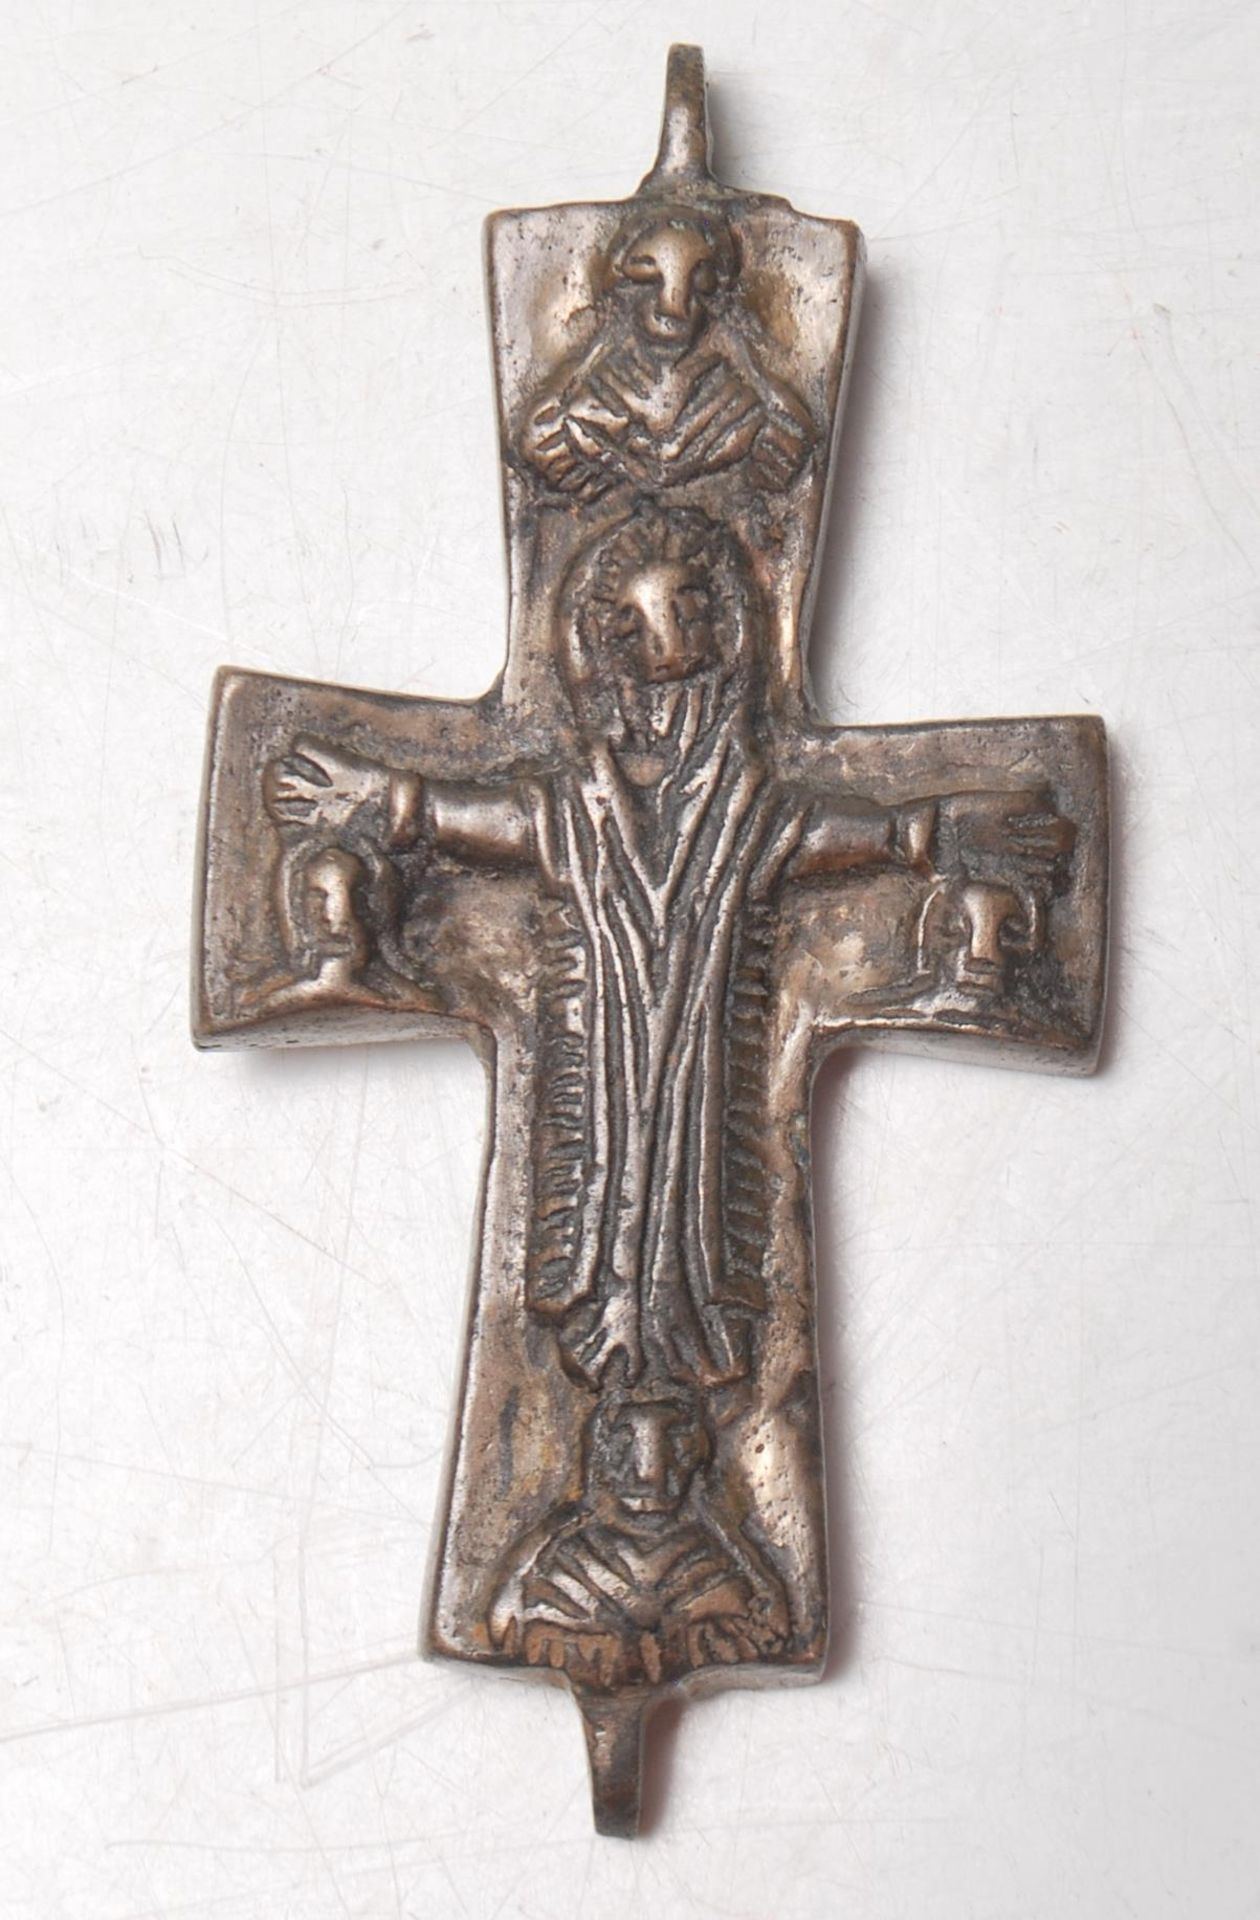 MEDIEVAL BYZANTINE RELIQUARY CROSS FRAGMENT